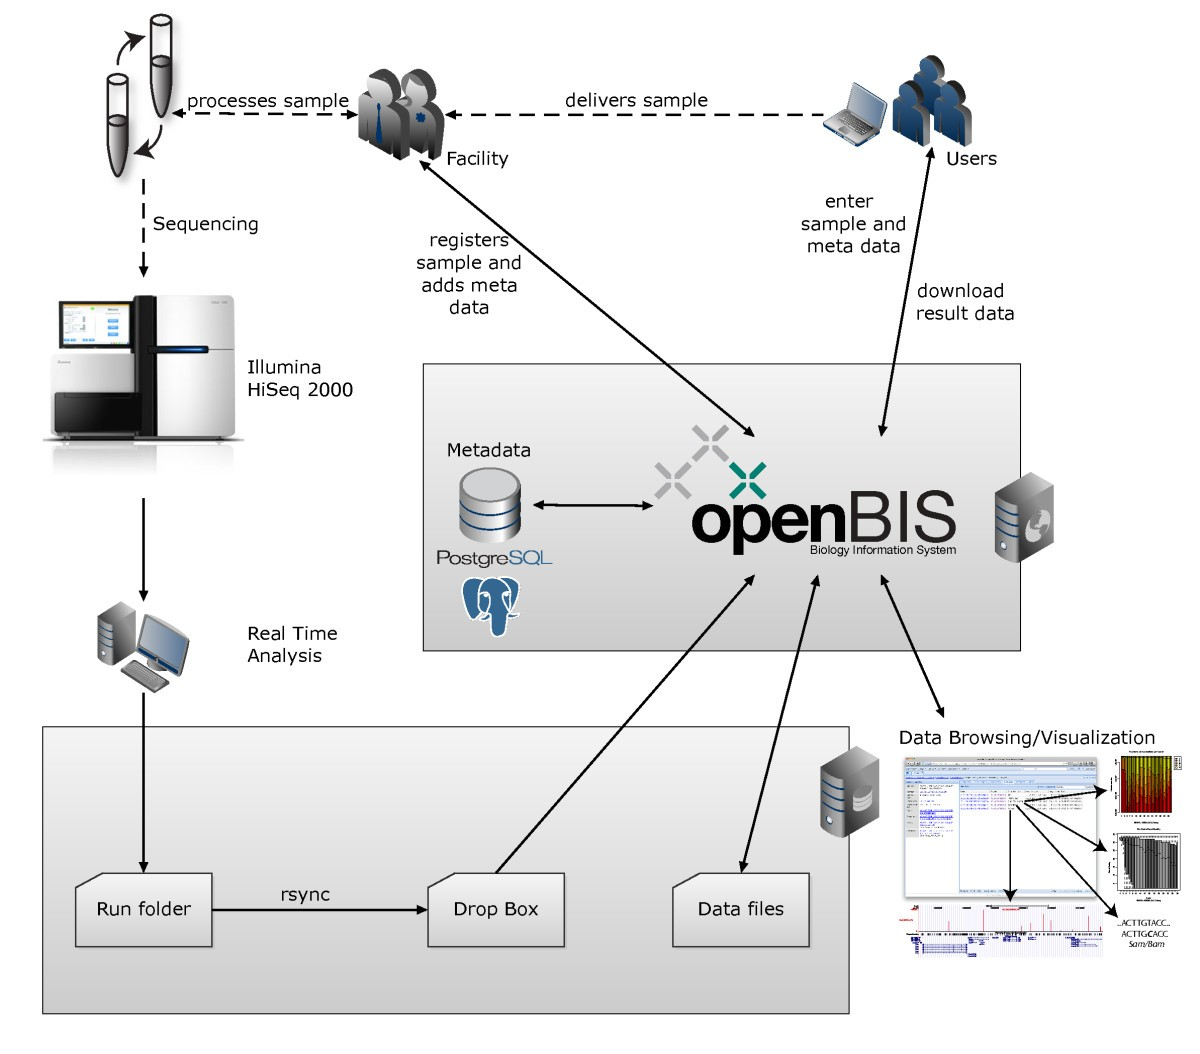 Openbis A Flexible Framework For Managing And Analyzing Complex Diagram Generator Furthermore Data Centers Power Supply On T Figure 4